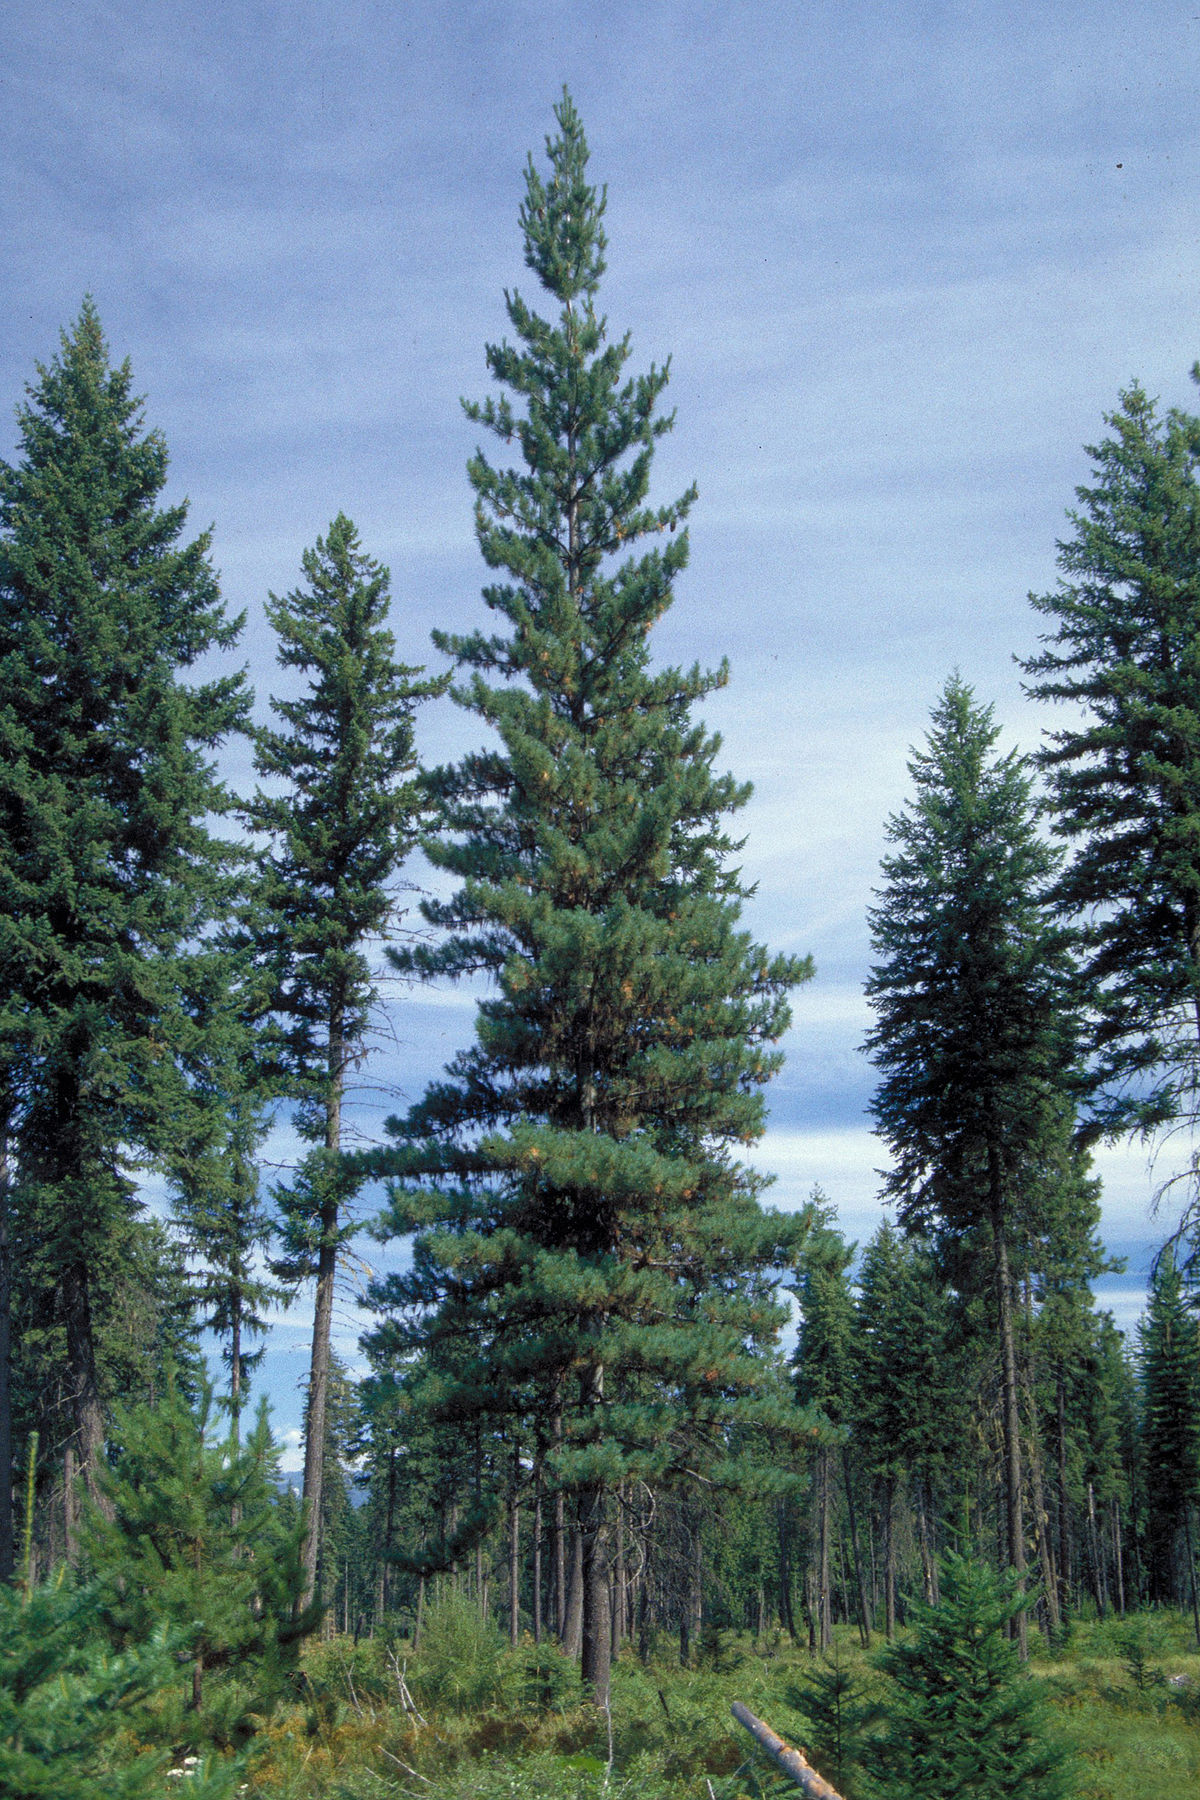 White Pine trees, otherwise known as Pinus strobus